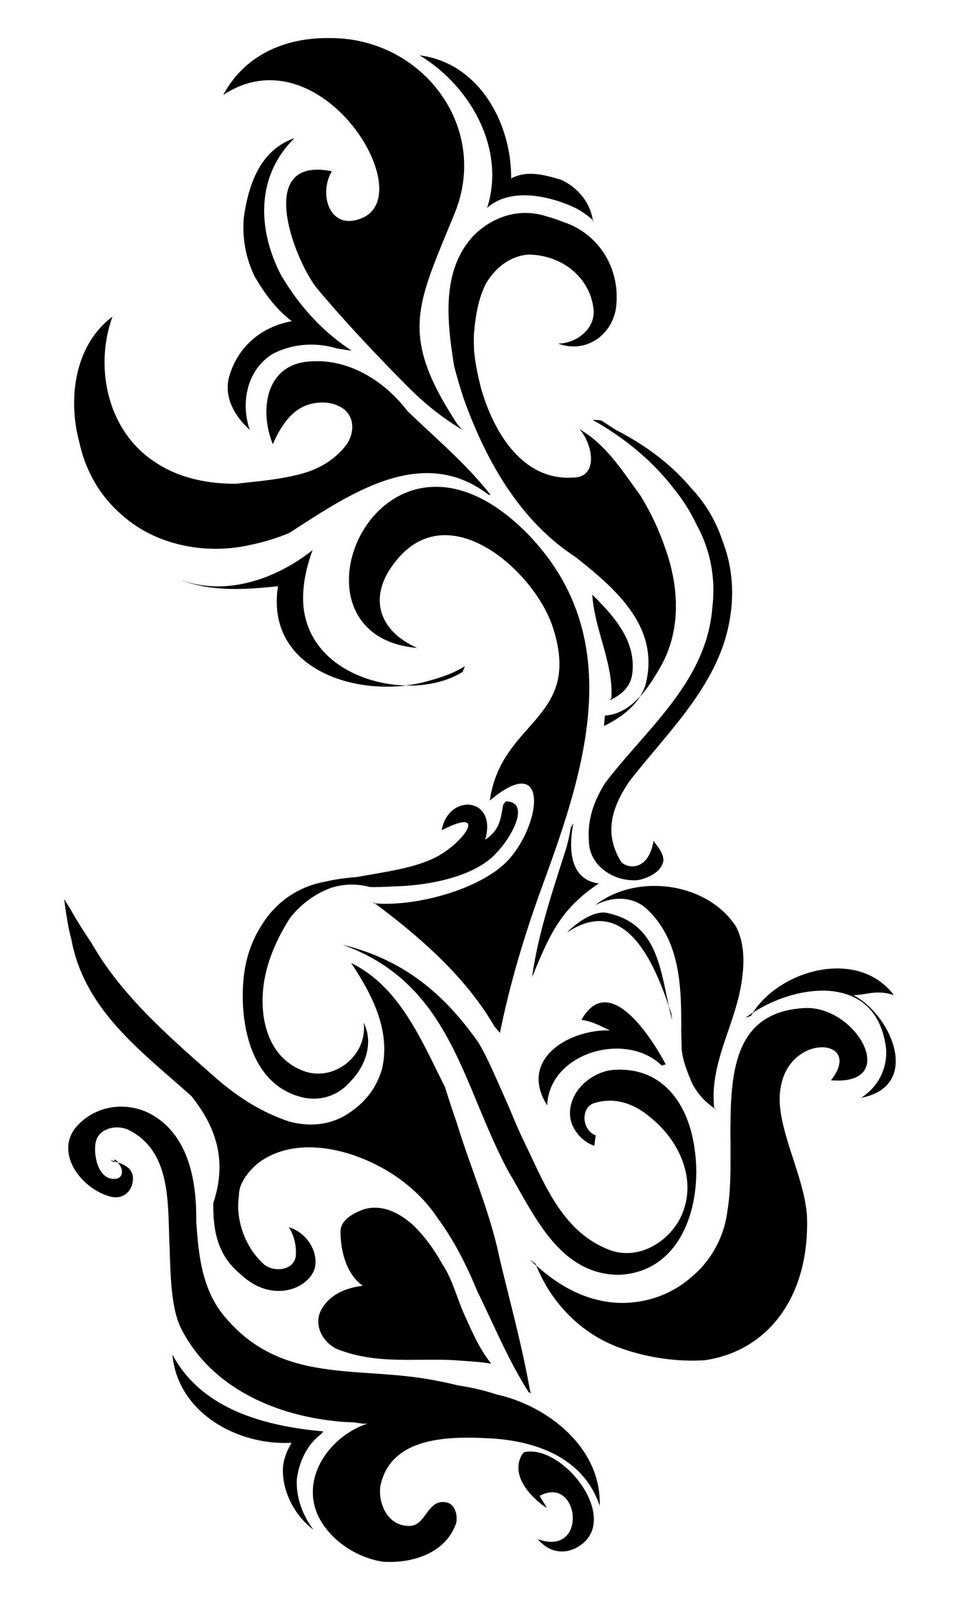 Tribal Tattoo Designs Free Free Tattoo Designs Tribal Tattoo